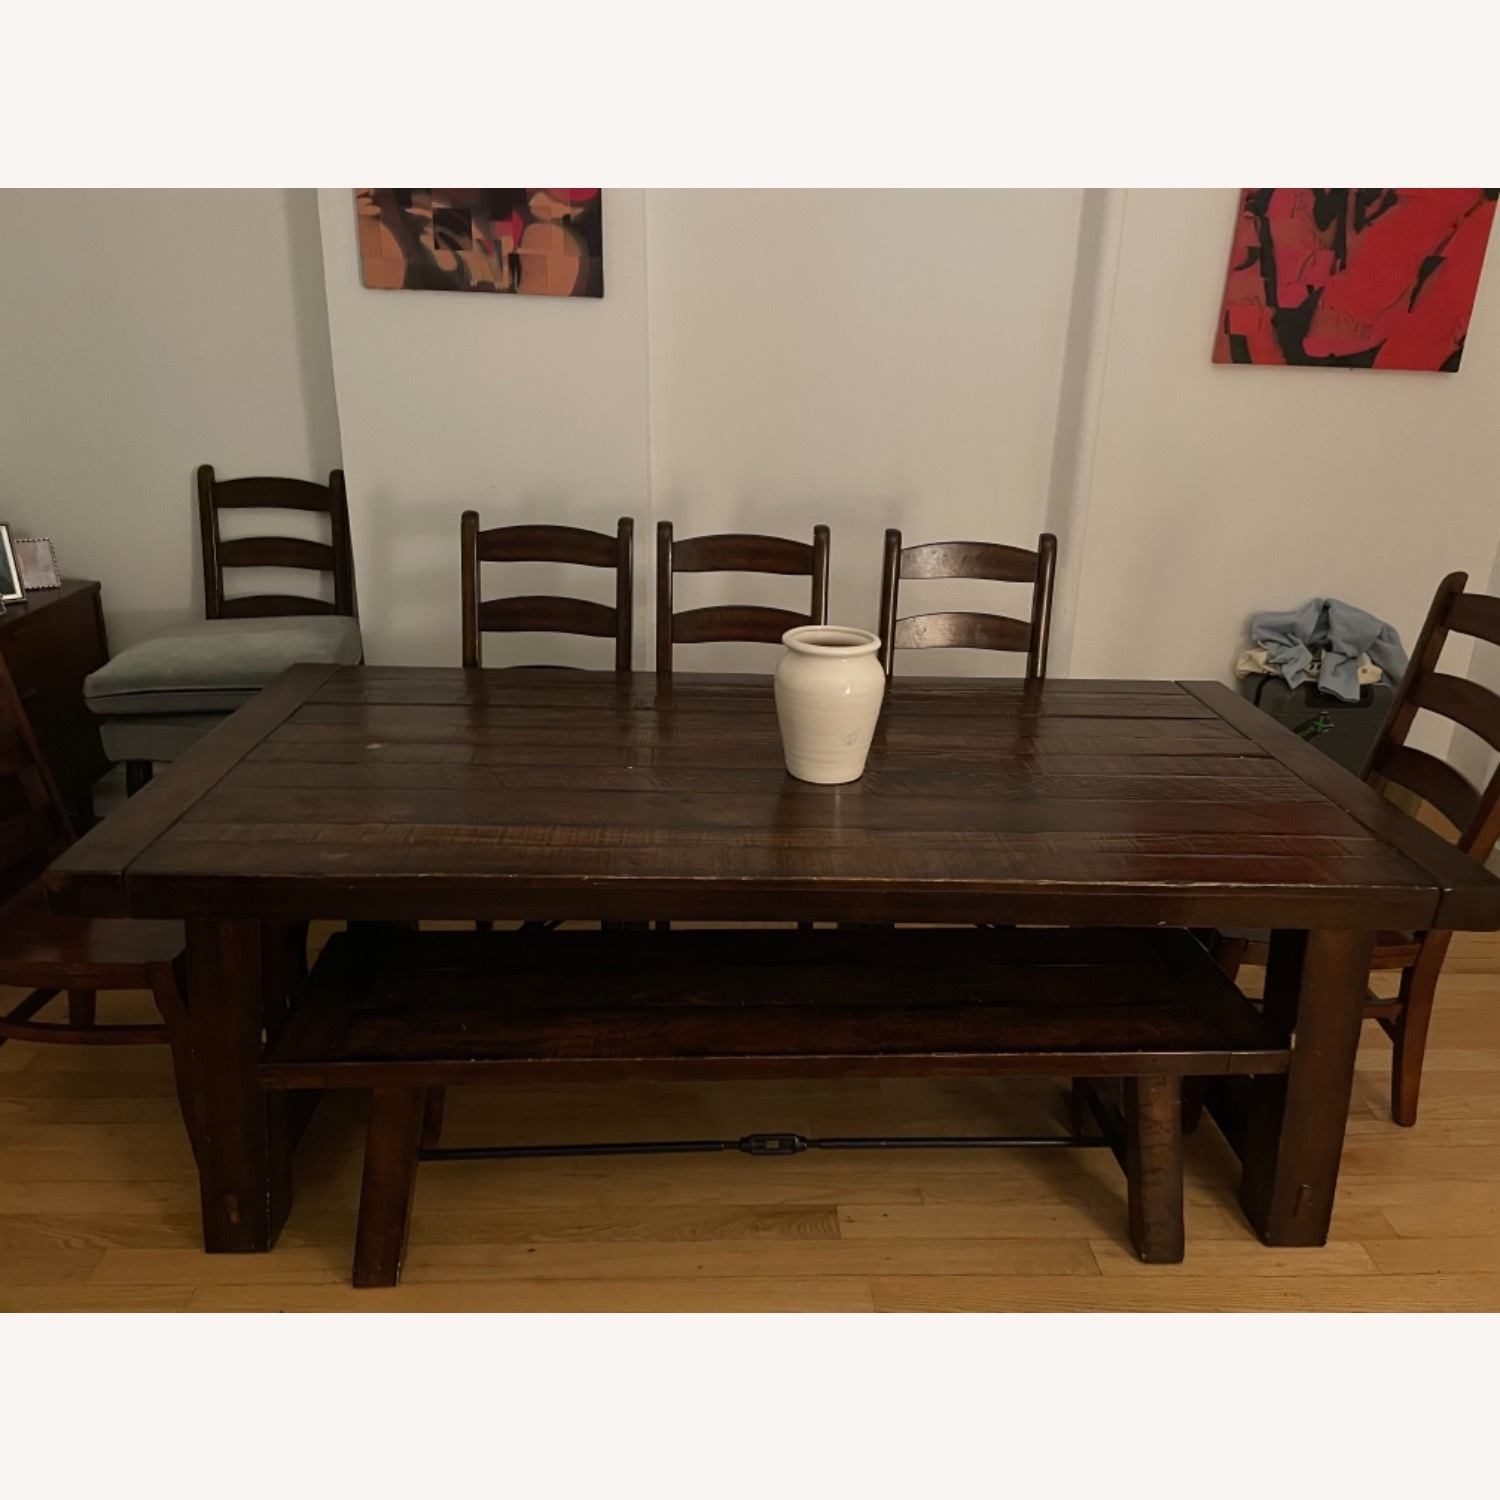 Pottery Barn Benchwright Extension Table Set - image-1